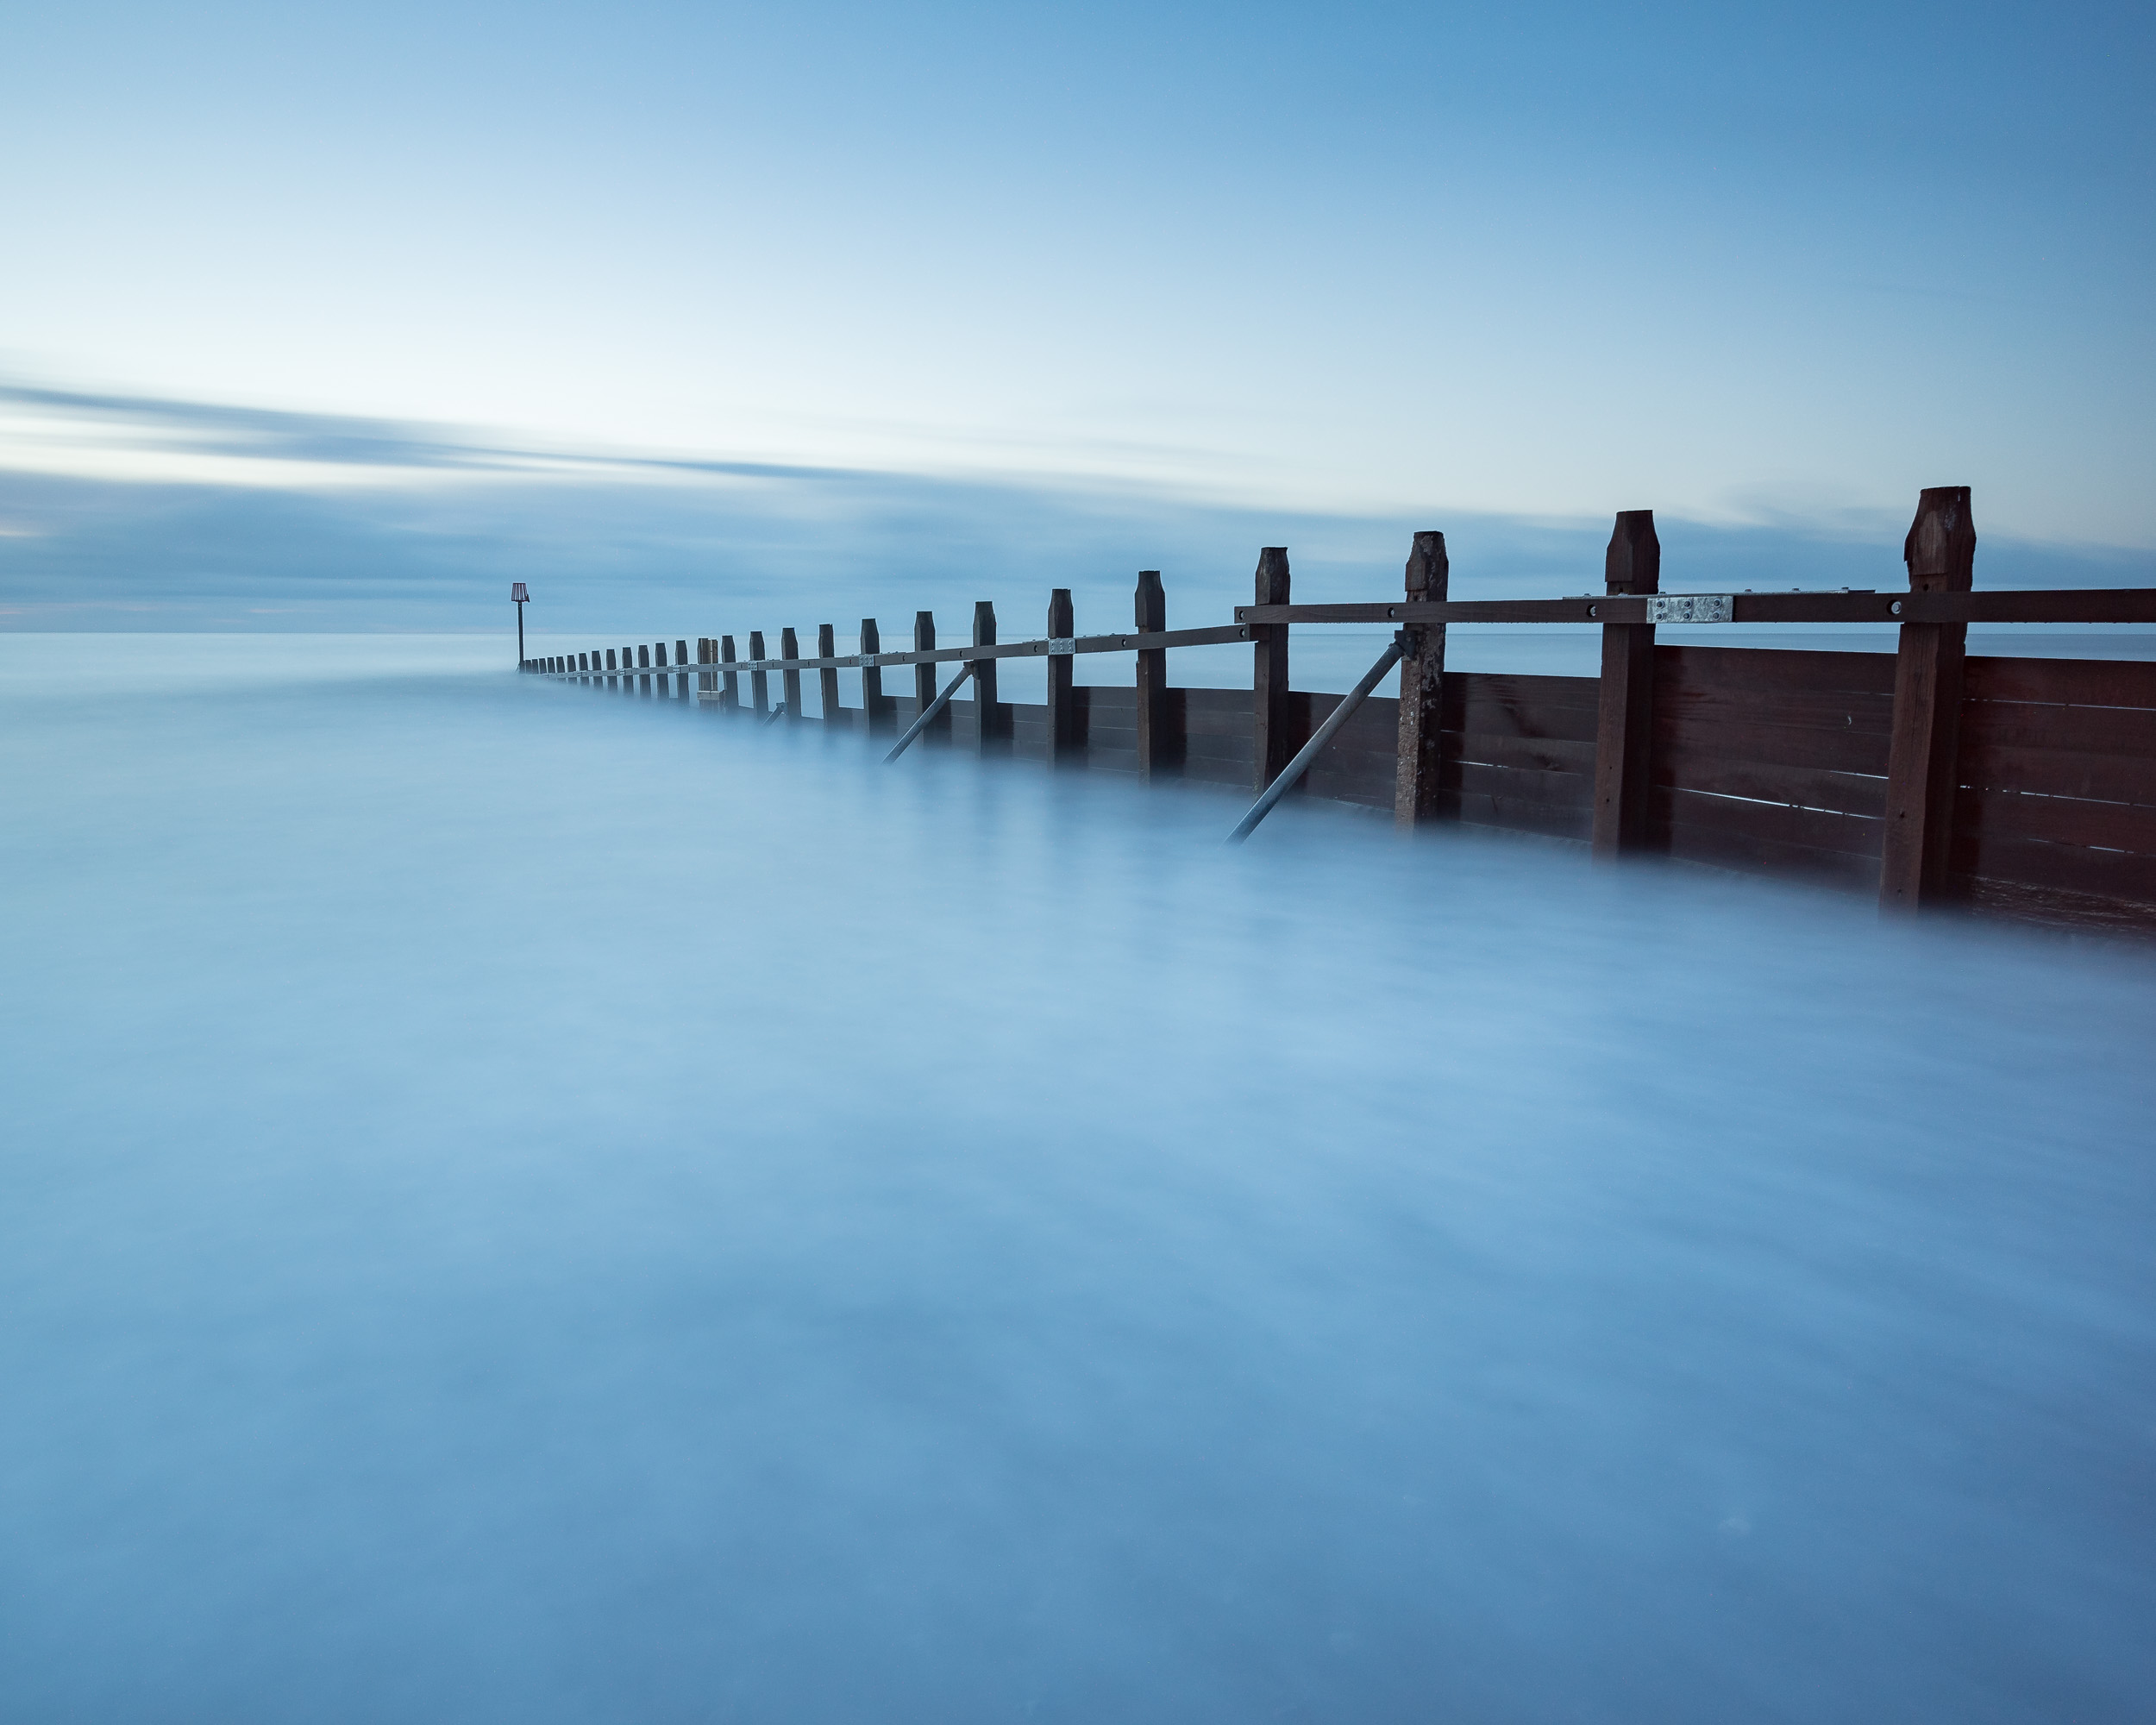 The groynes along the beach at Dawlish Warren offer some great lines for your composition. Long exposures often work well at this location as well, especially in poor light.